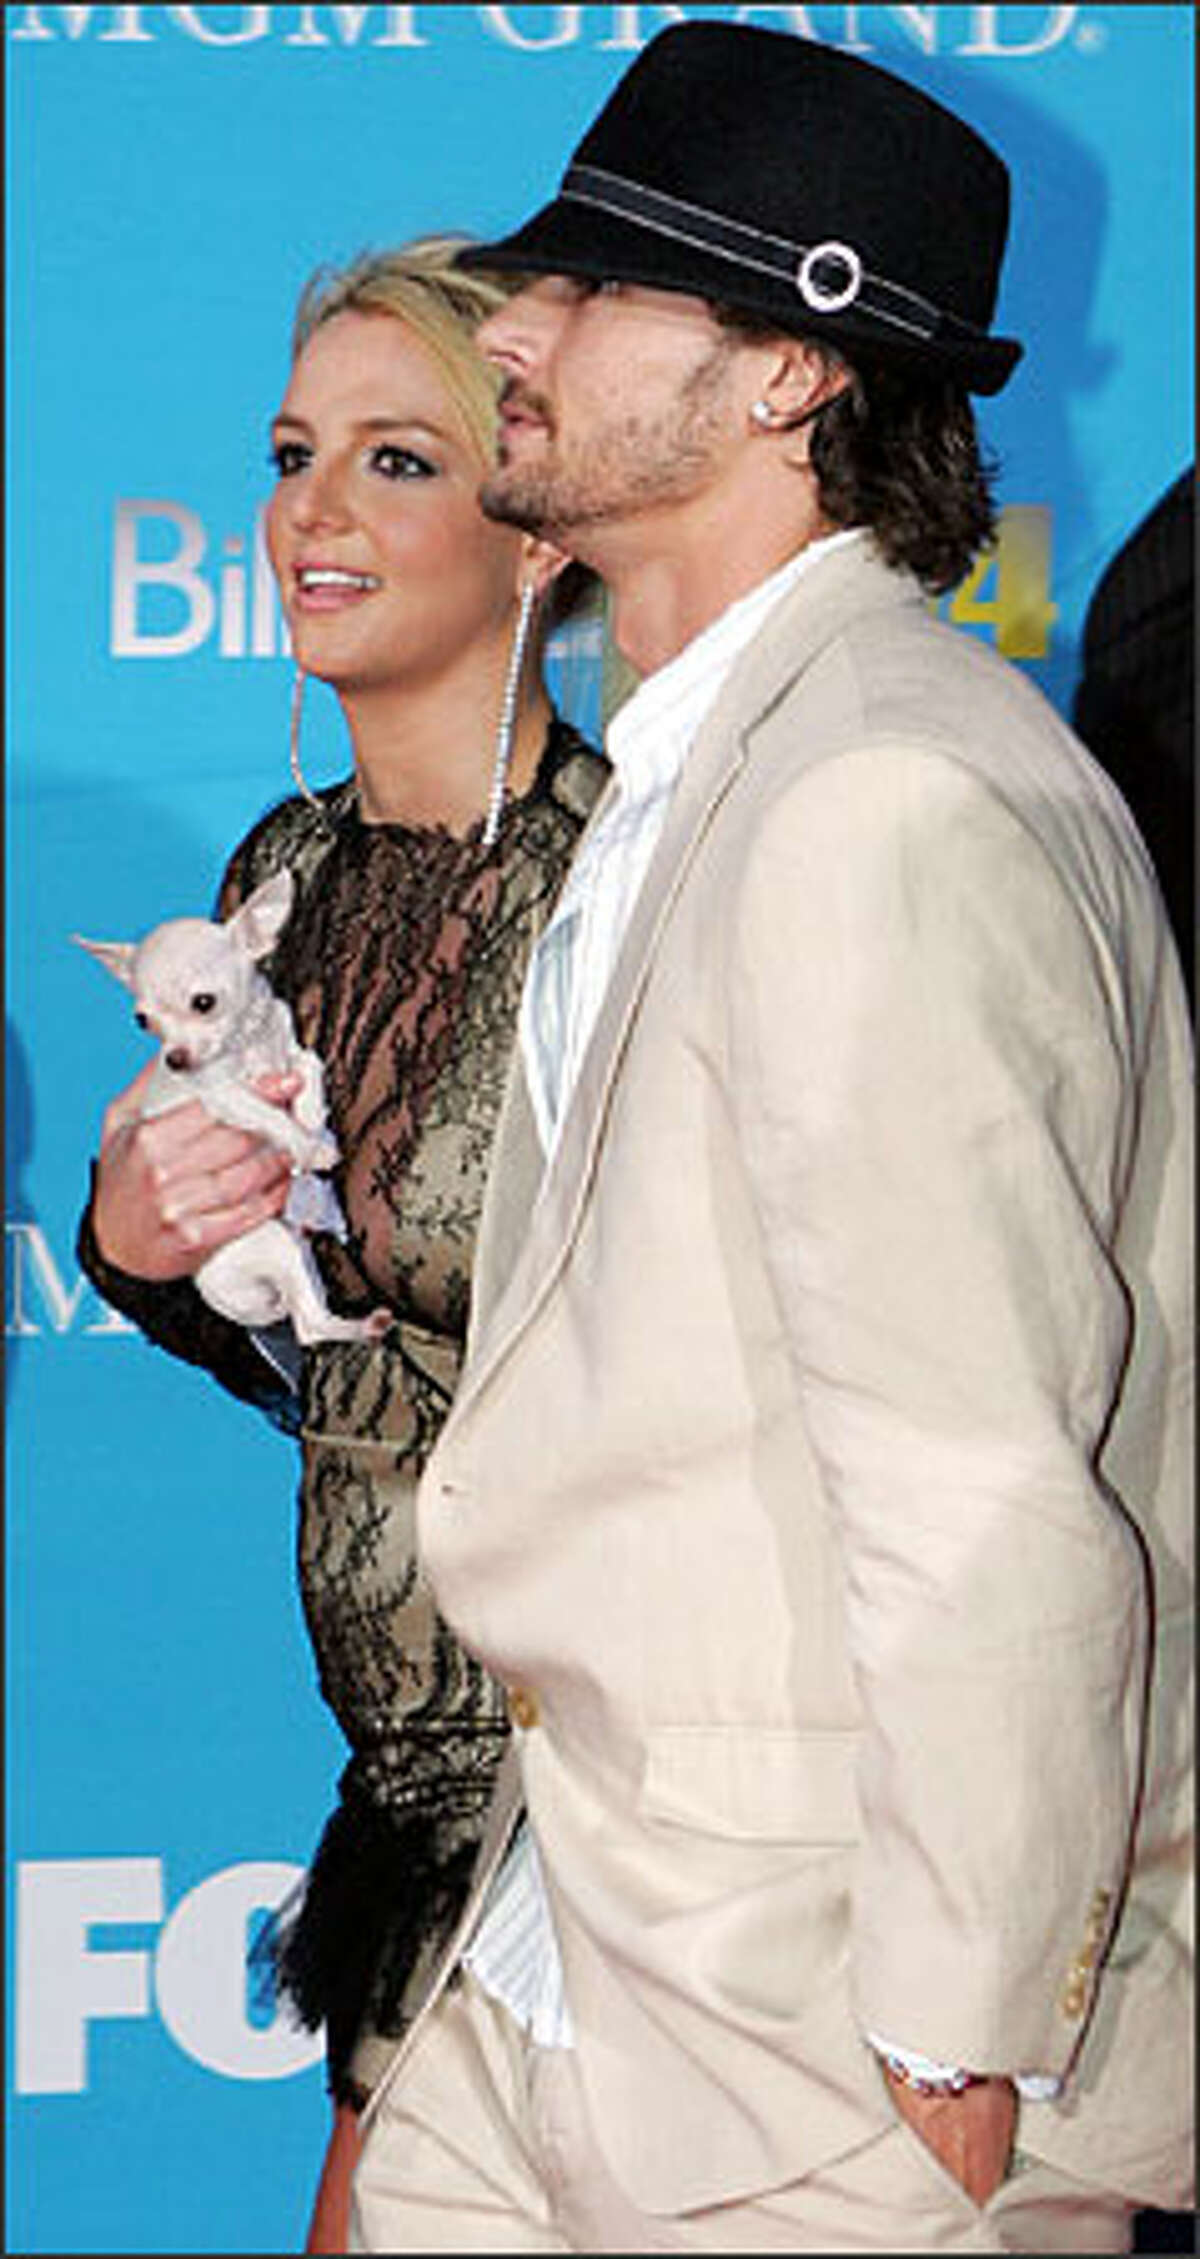 Talk about a thin plot line! Britney Spears and husband Kevin Federline (shown here at the Billboard Music Awards in December), are going to do a reality series for UPN television network. The series will document their courtship, engagement and wedding. (Can't that be covered in about one 30-minute episode?) Let's hope Britney's dog is in the cast. The little cutie could be the most interesting character on the show.